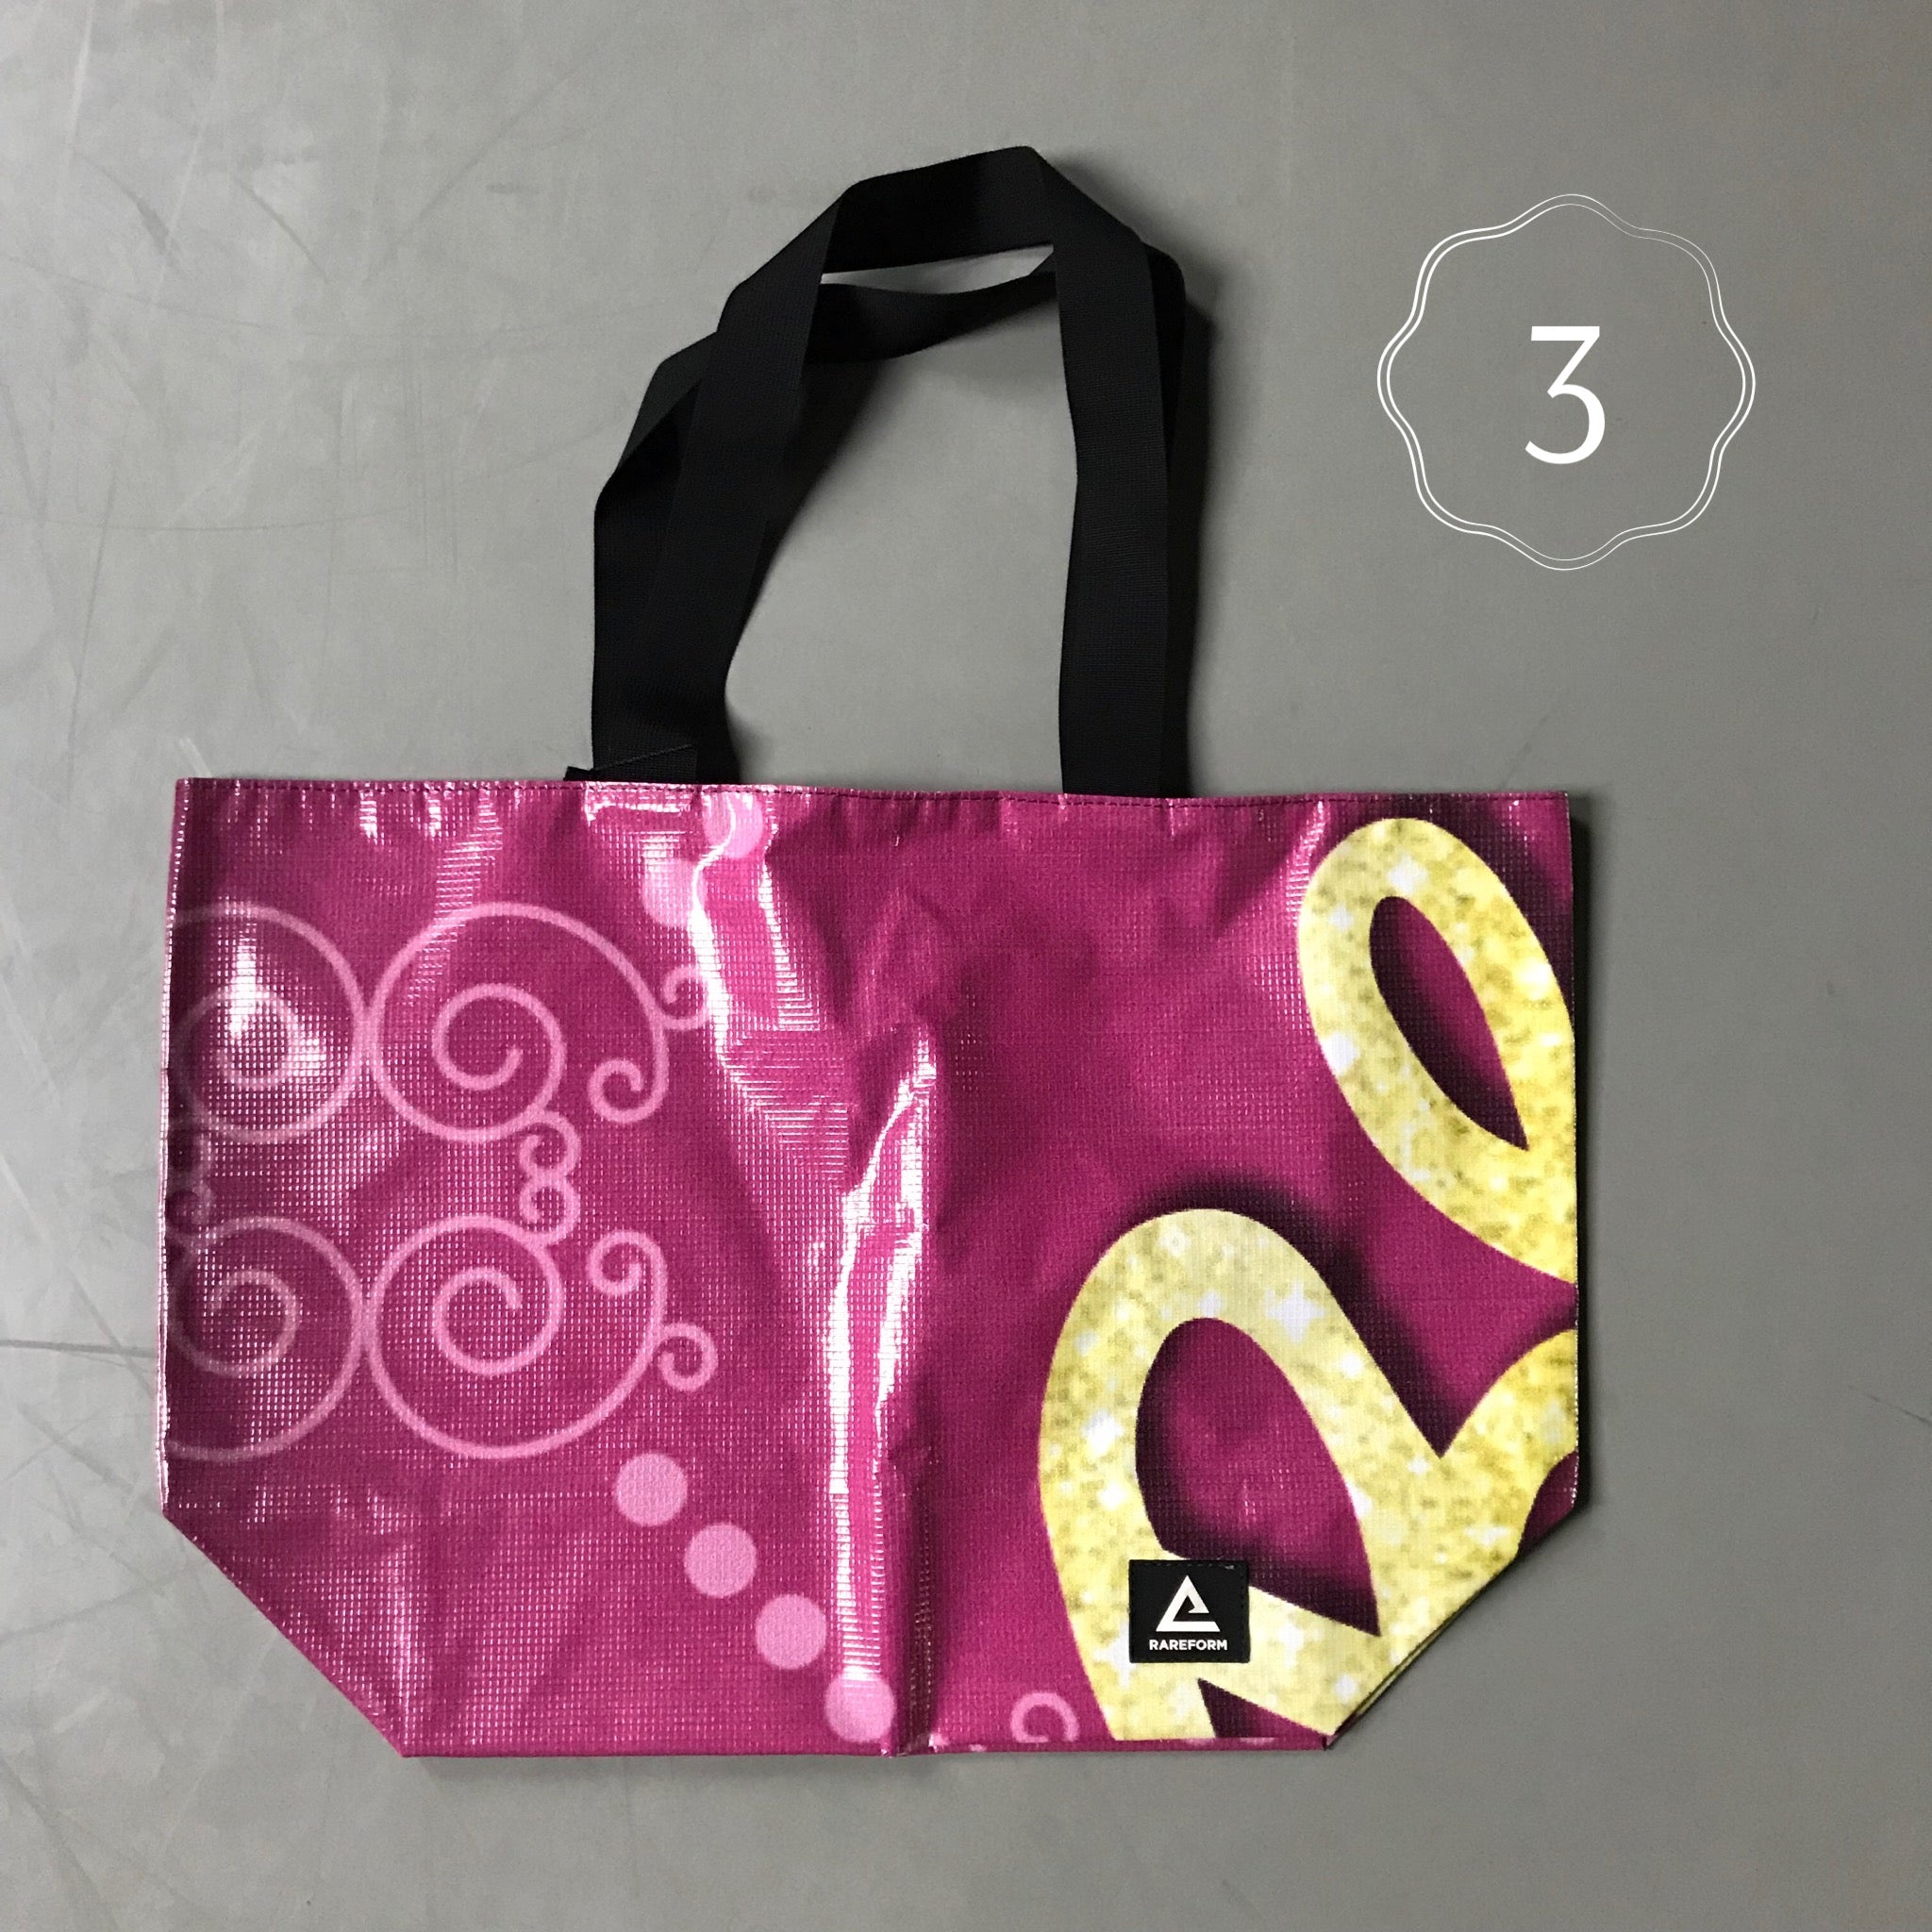 Rareform Blake Tote Bag - Assorted one-of-a-kind colors